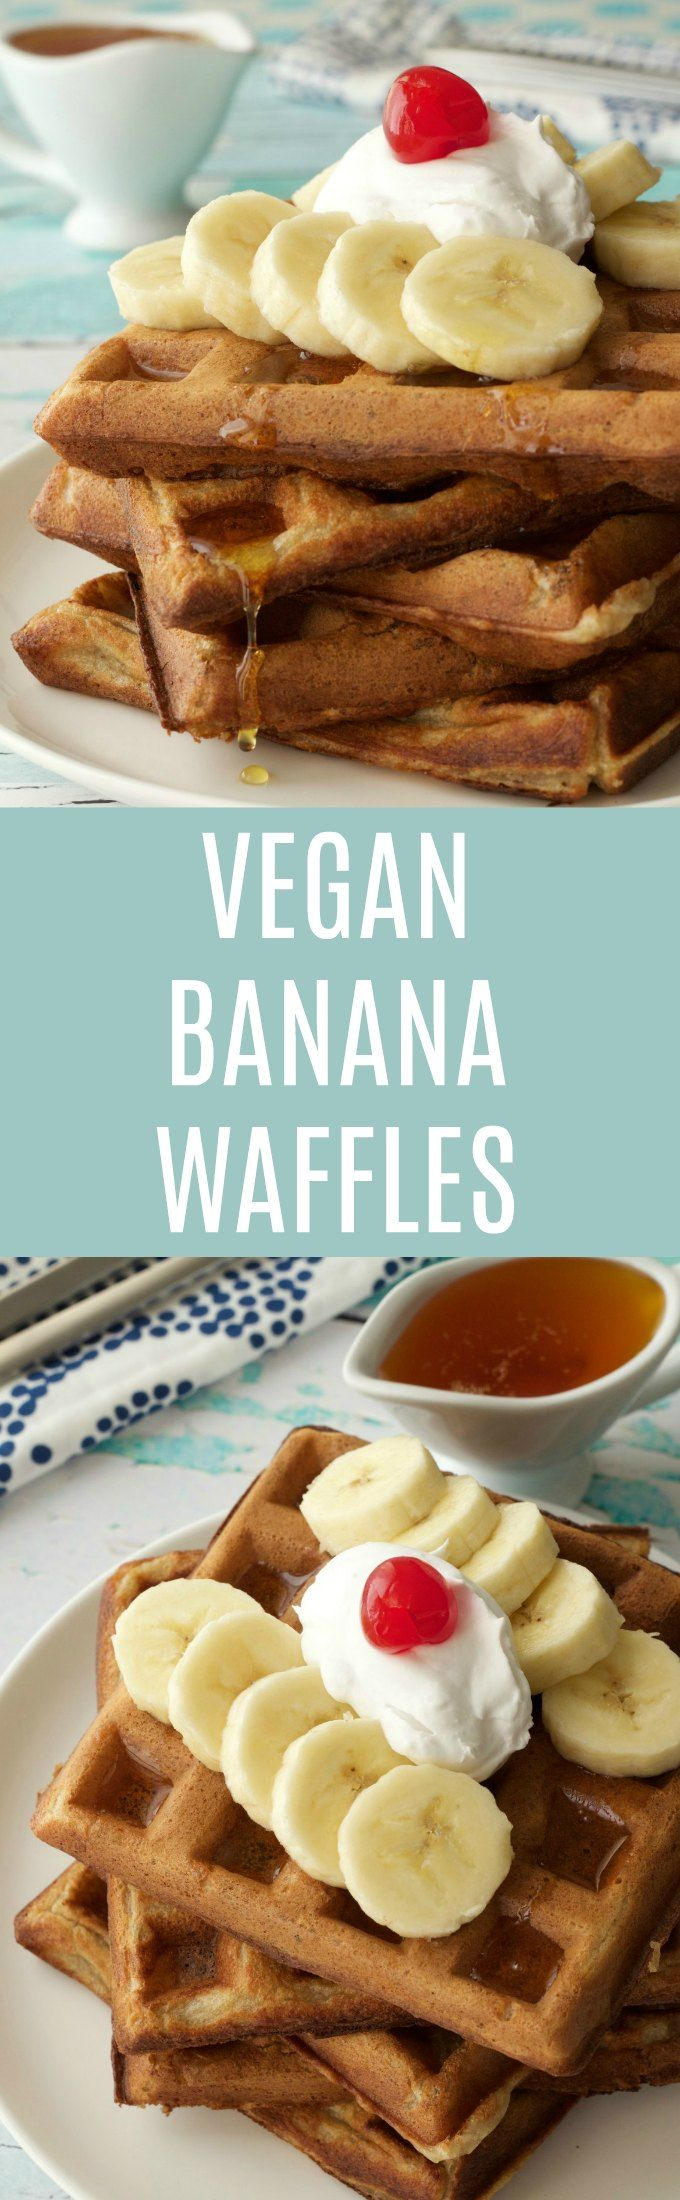 Vegan Banana Waffles - perfect for breakfast served with whipped coconut cream and sliced banana! Vegan | Vegan Breakfast | Vegan Waffles | Vegan Recipes | Dairy Free